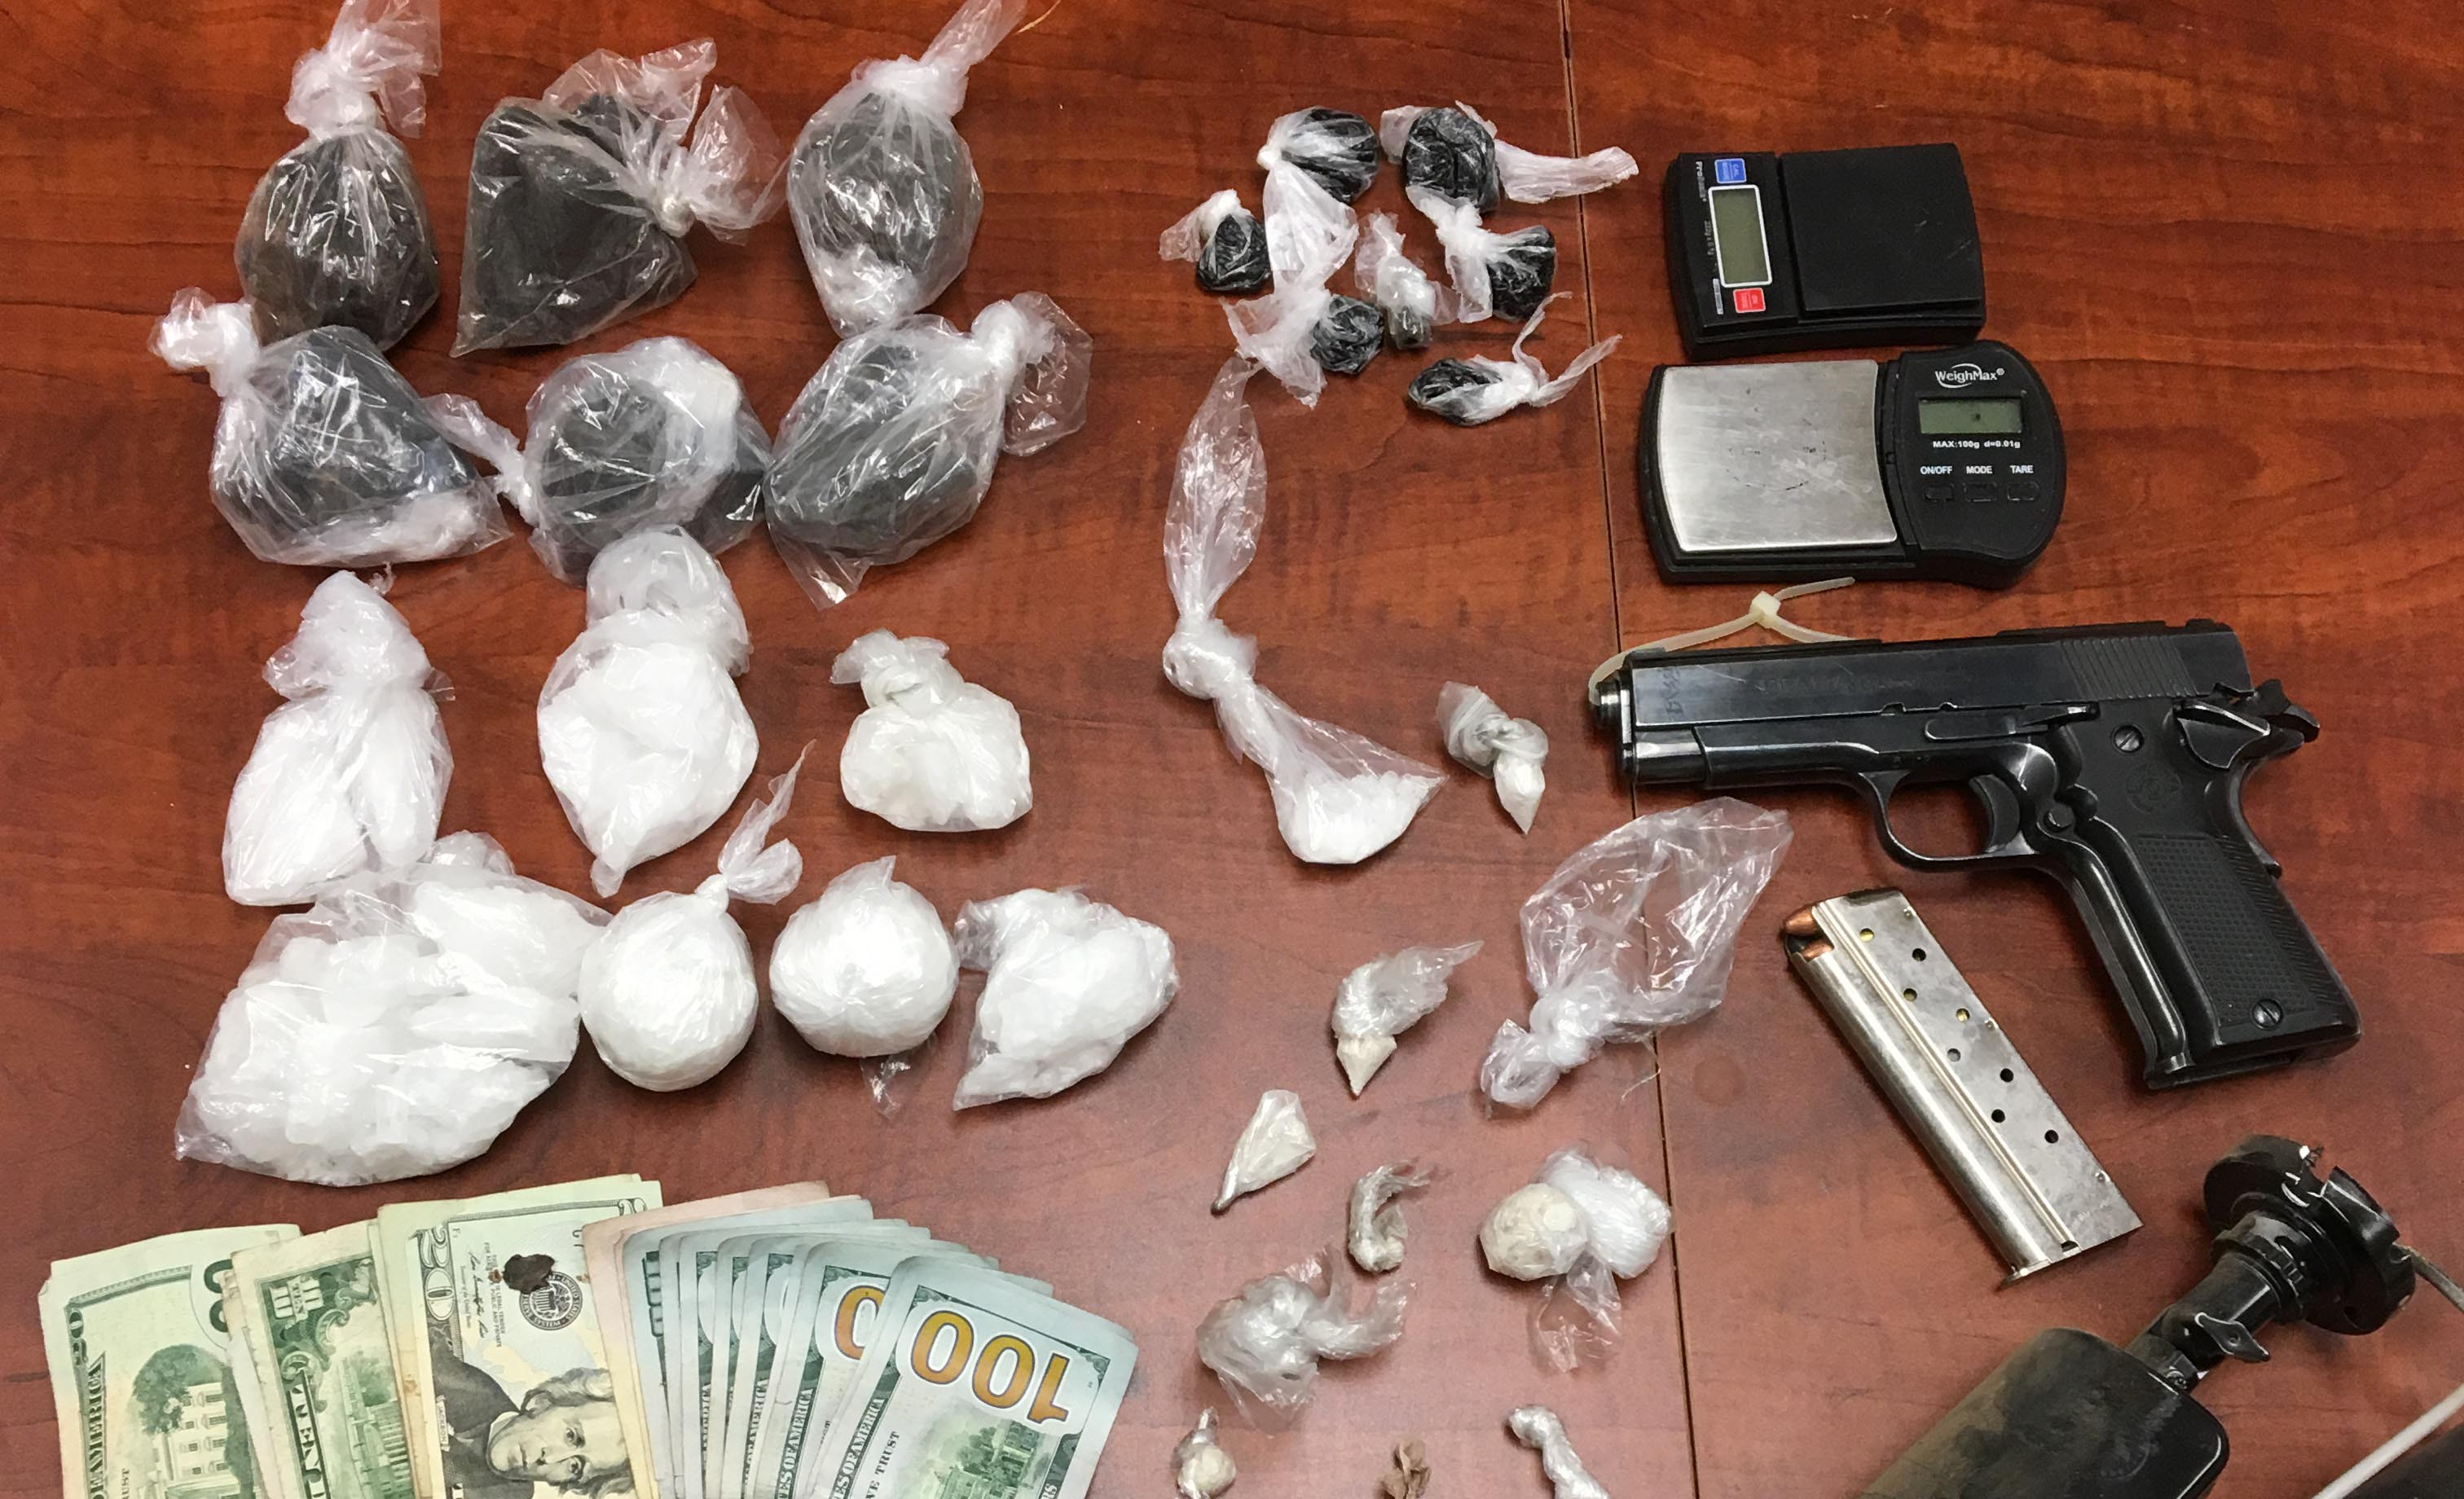 Where do seized drugs go? Here's what happens to evidence, assets after a bust